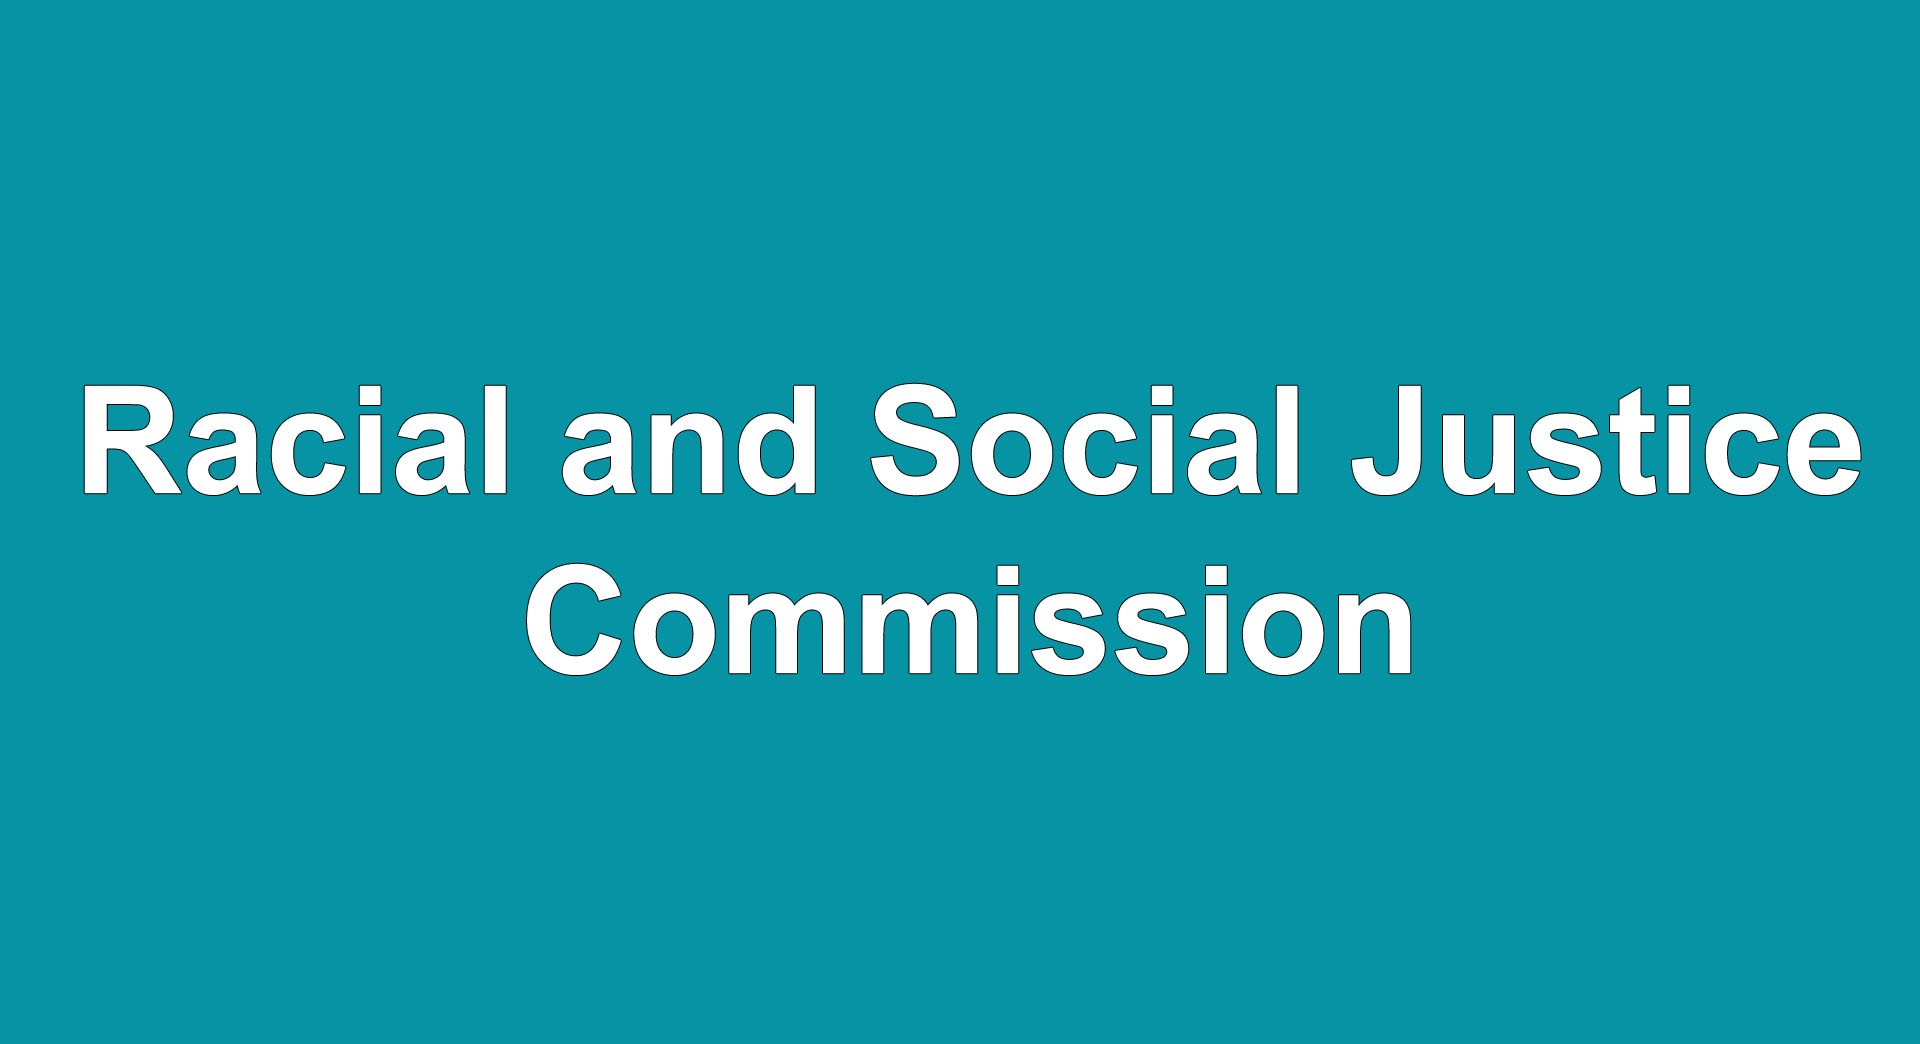 Racial and Social Justice Commission meeting set